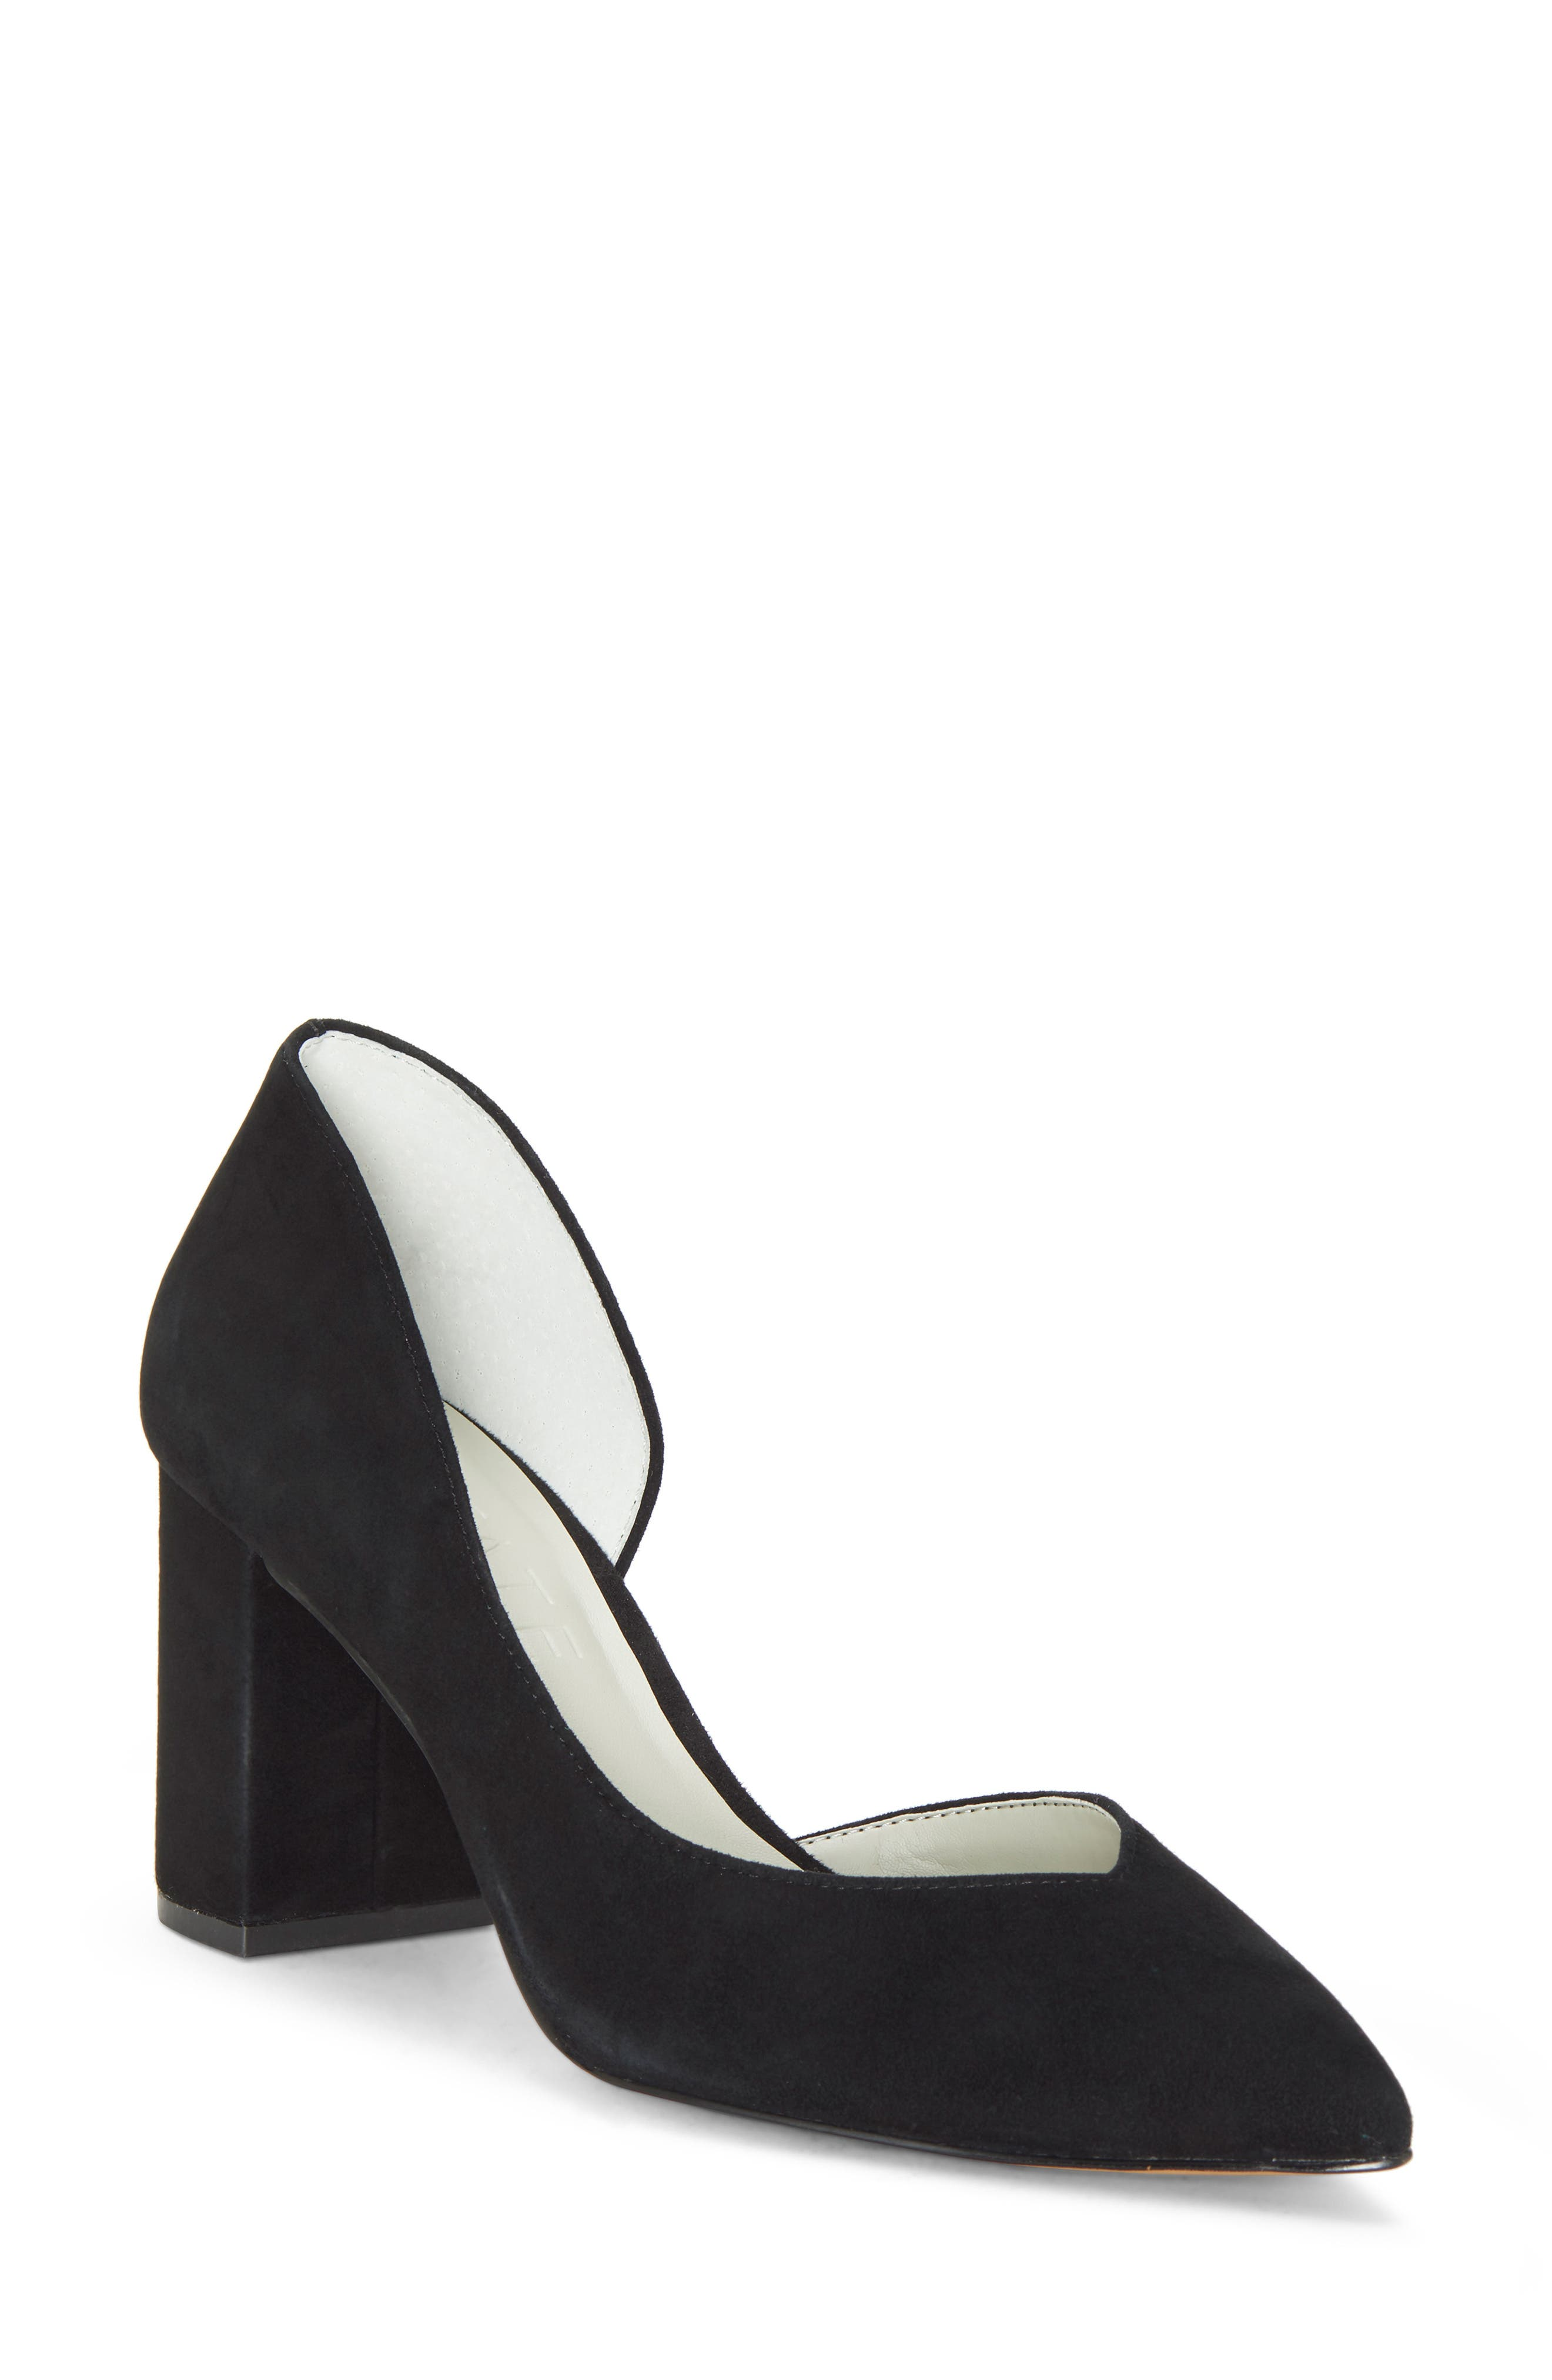 Sisteen Half d'Orsay Pump,                         Main,                         color, BLACK SUEDE